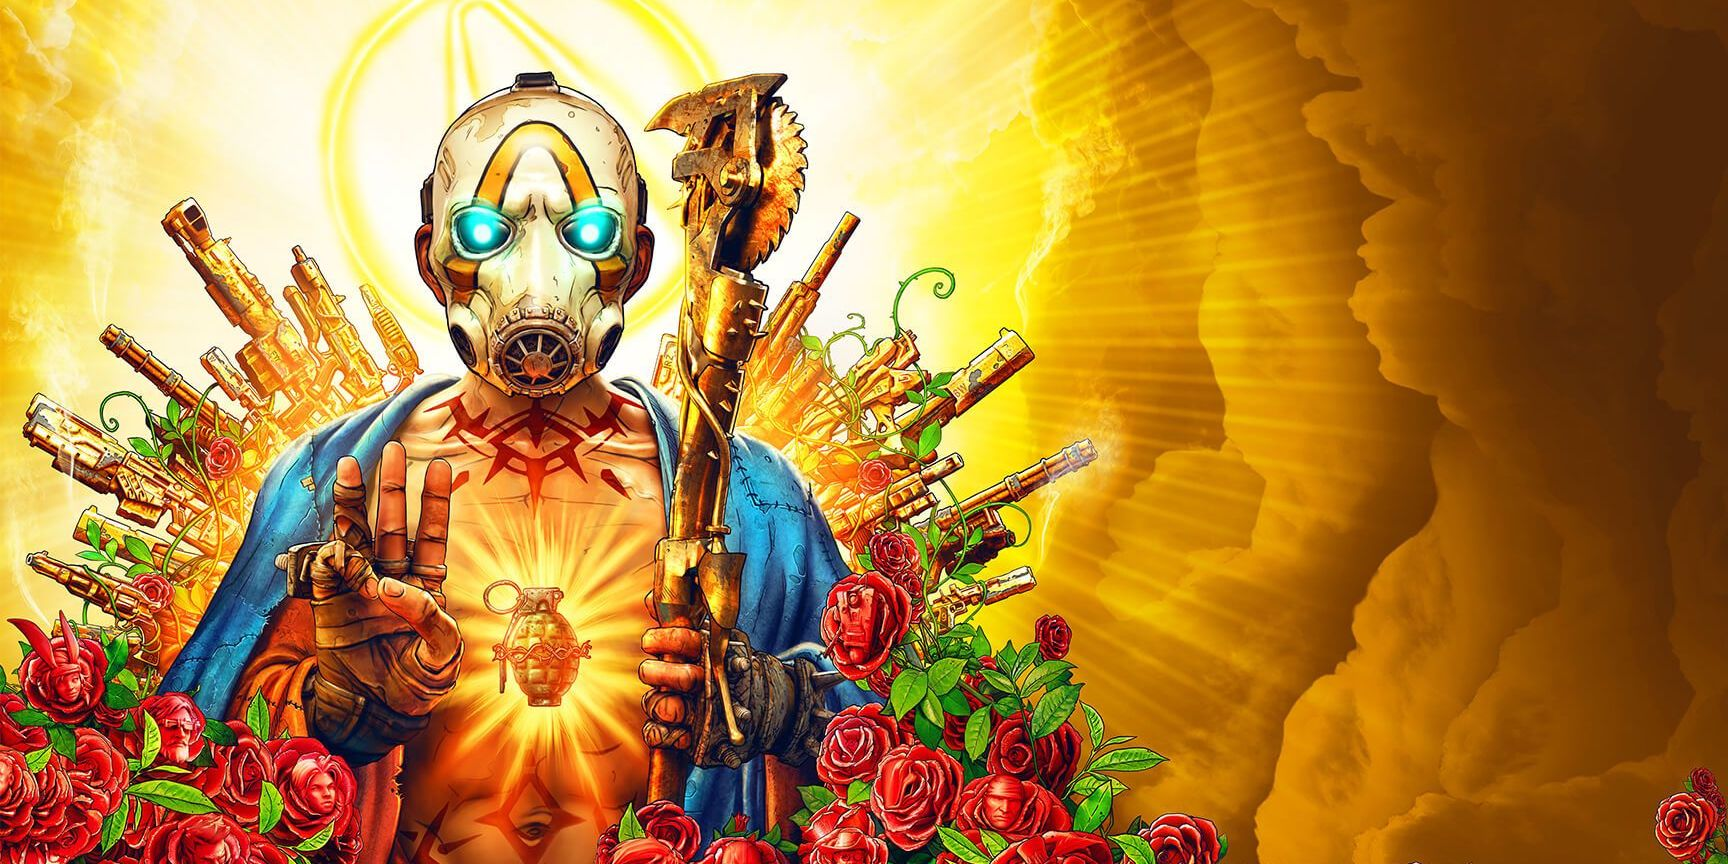 Today's Best Game Deals: Borderlands 3 Deluxe $48, Star Wars Jedi Deluxe $28, more - 9to5Toys